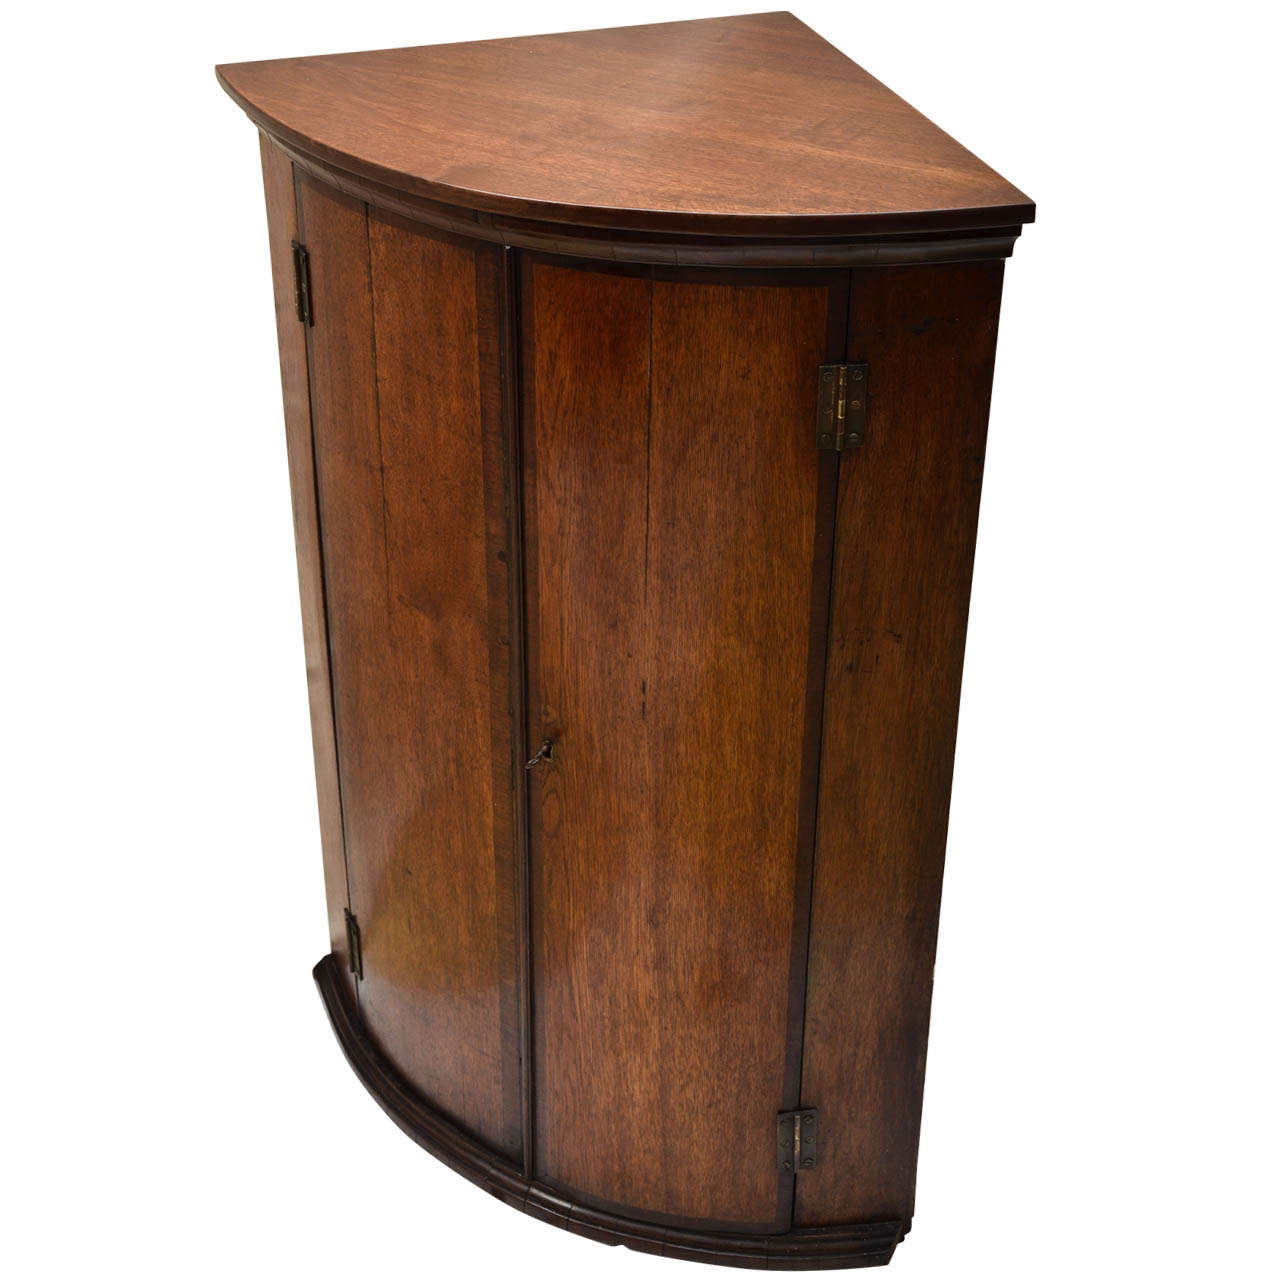 Superb 111 Oak Mahogany Crossbanded Bow Front Hanging Corner Cupboard At 1stdibs